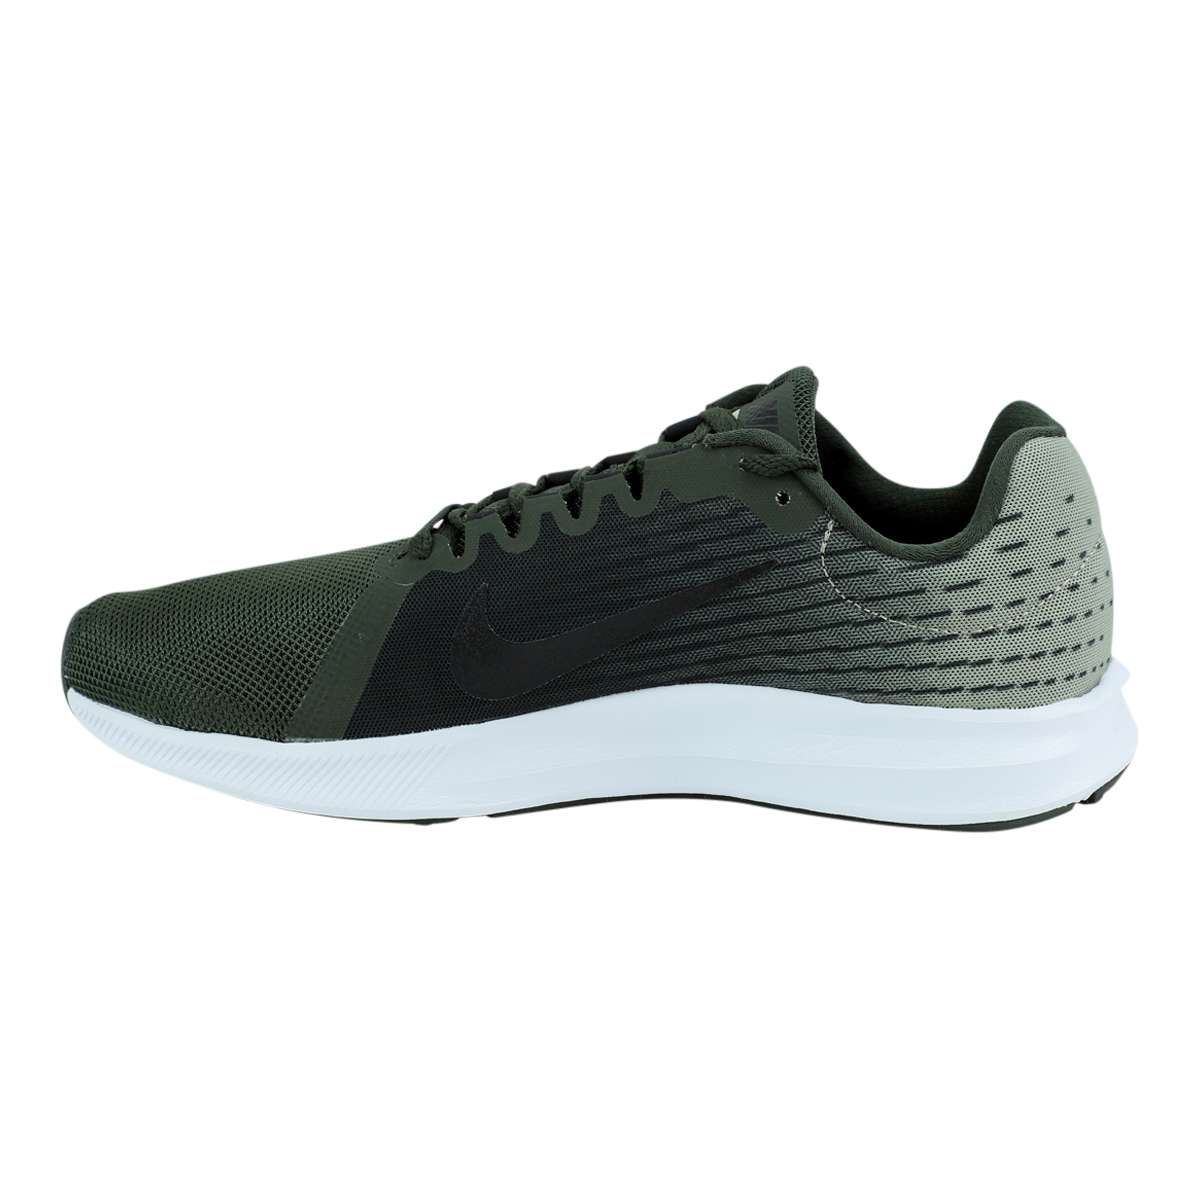 Nike-Men-039-s-Downshifter-8-Running-Shoes thumbnail 14